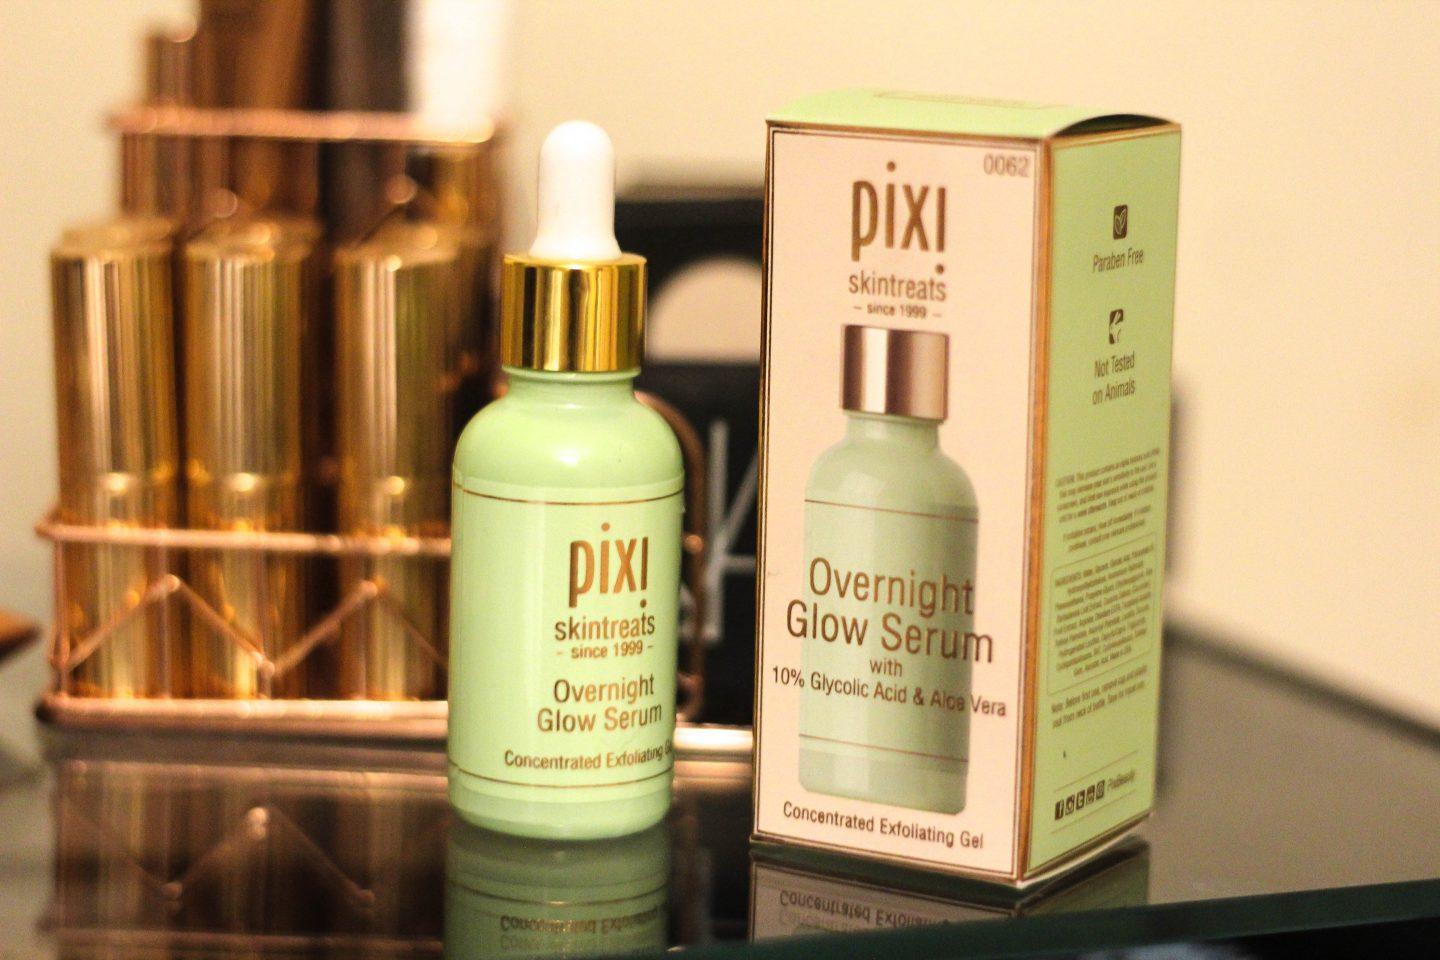 Pixi Overnight Glow Serum Review